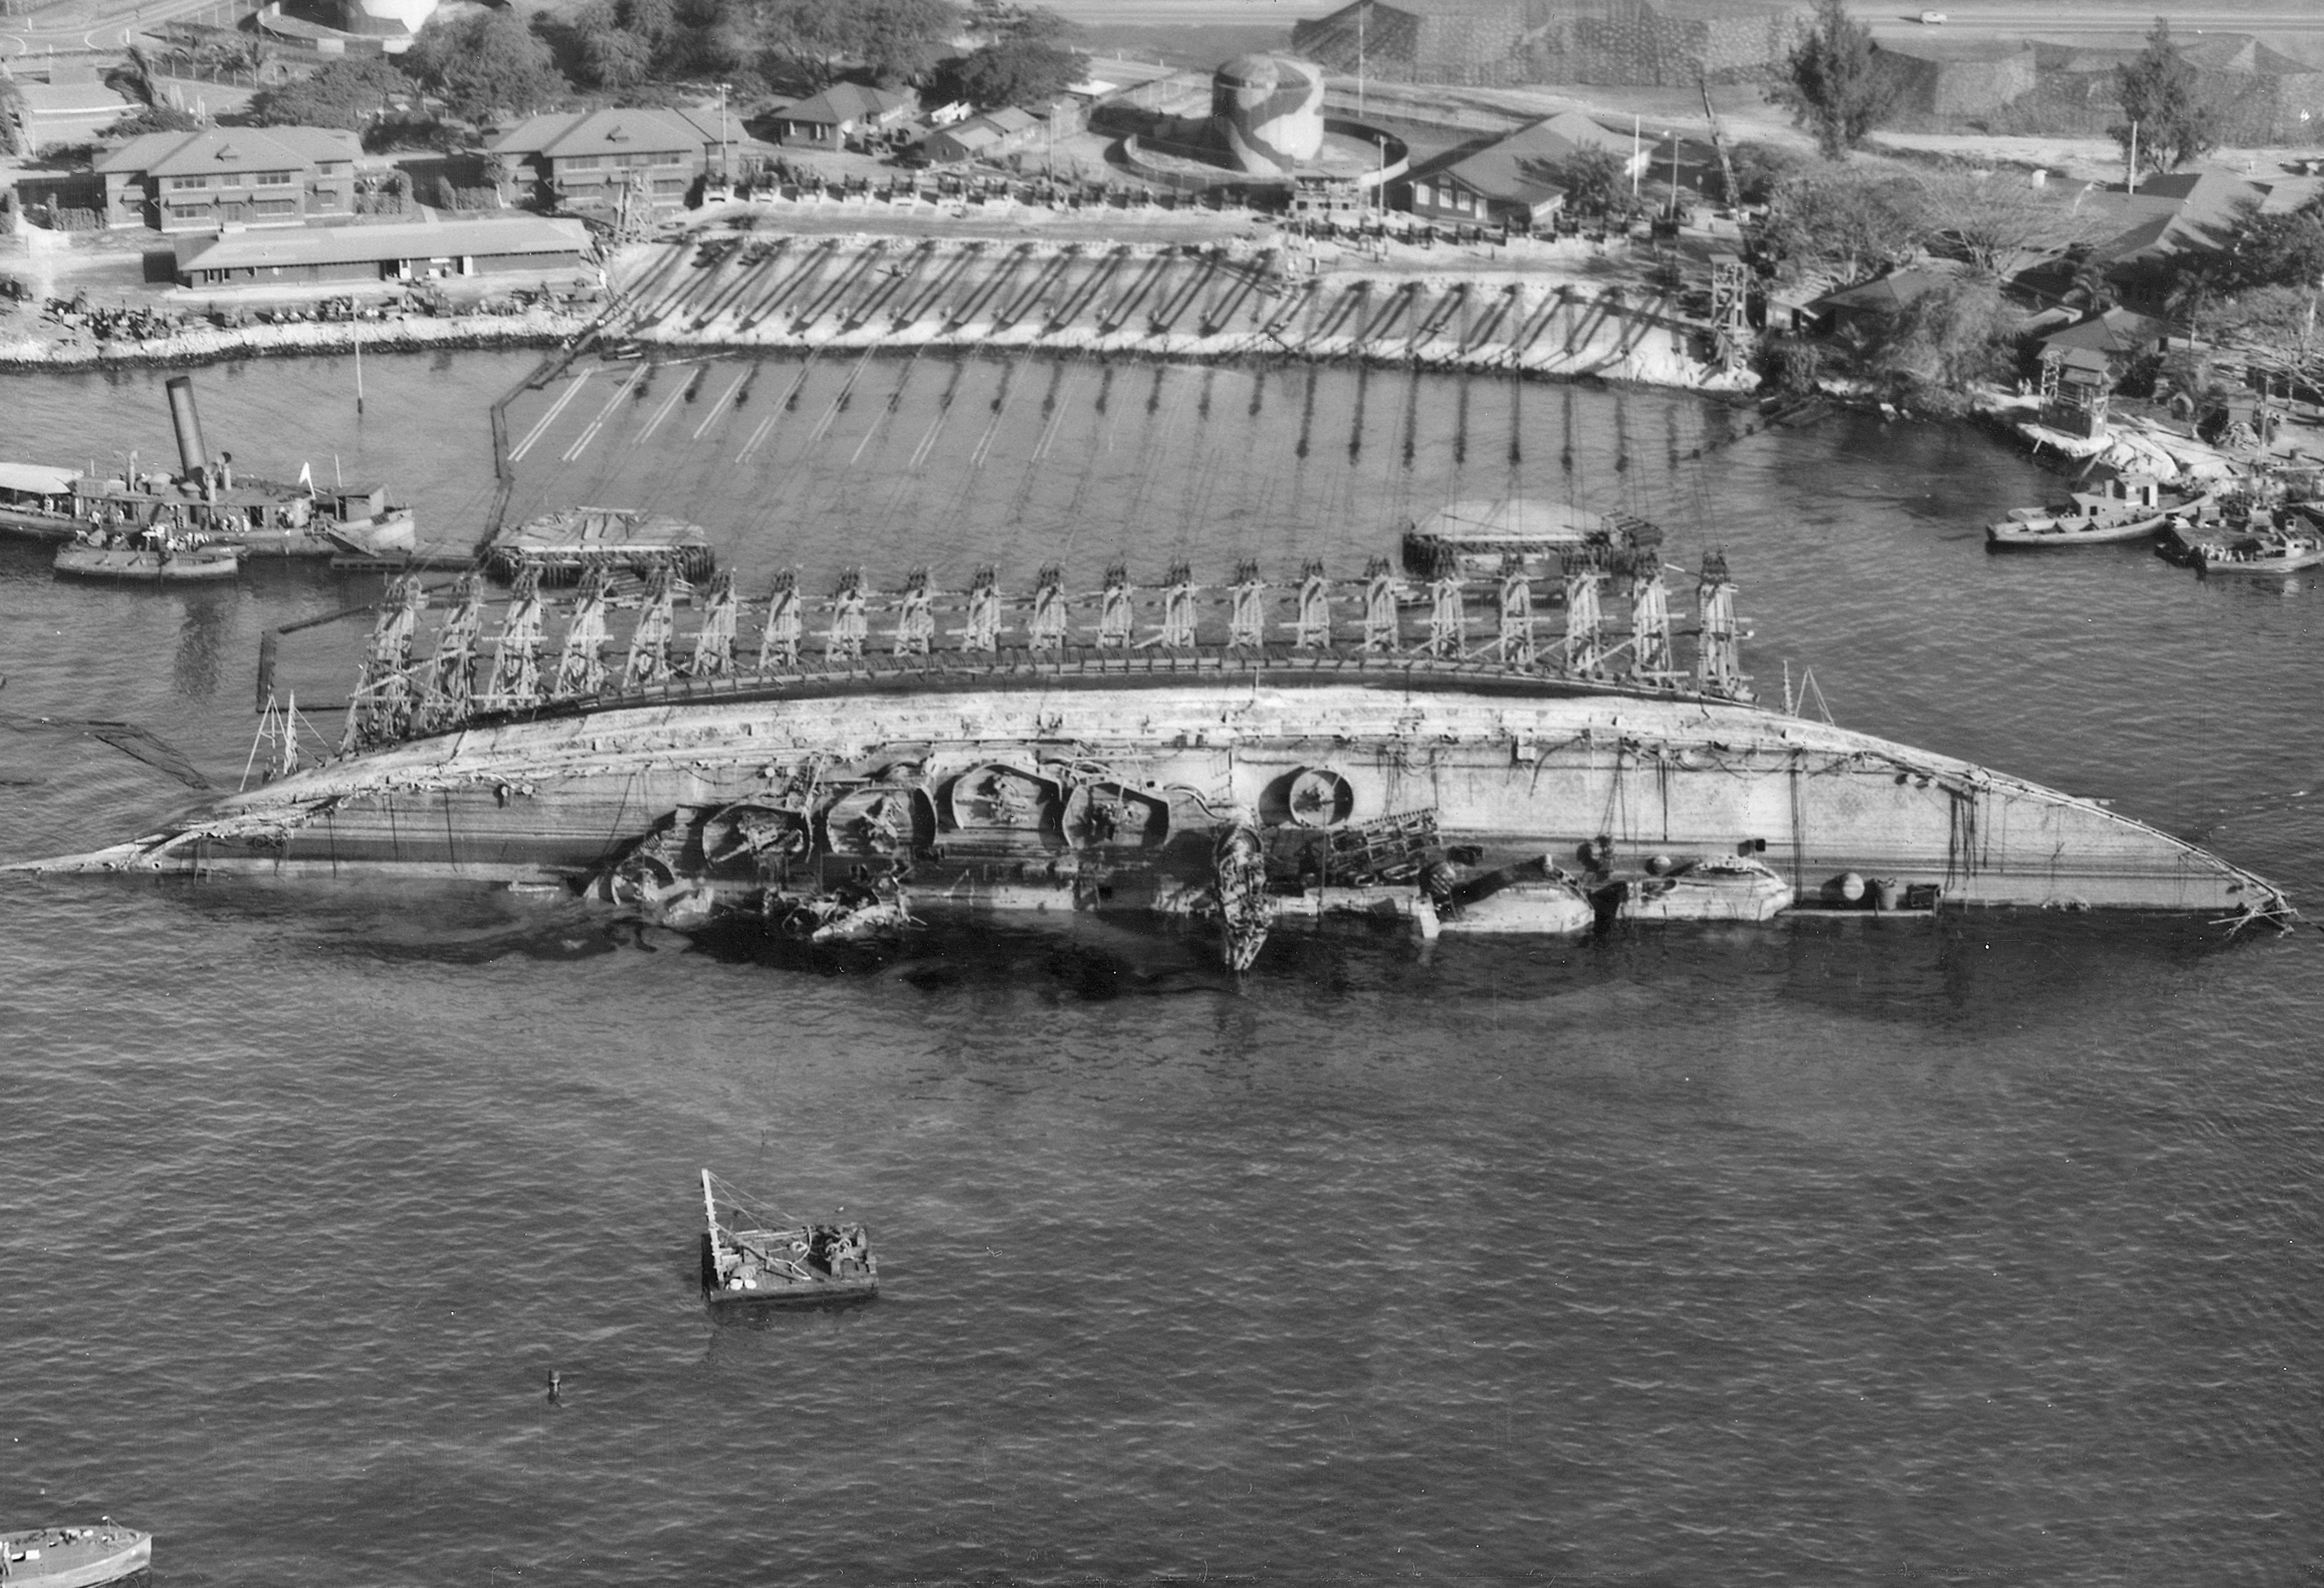 The Navy attempts to right USS Oklahoma on March 19, 1943. National Archives photo.